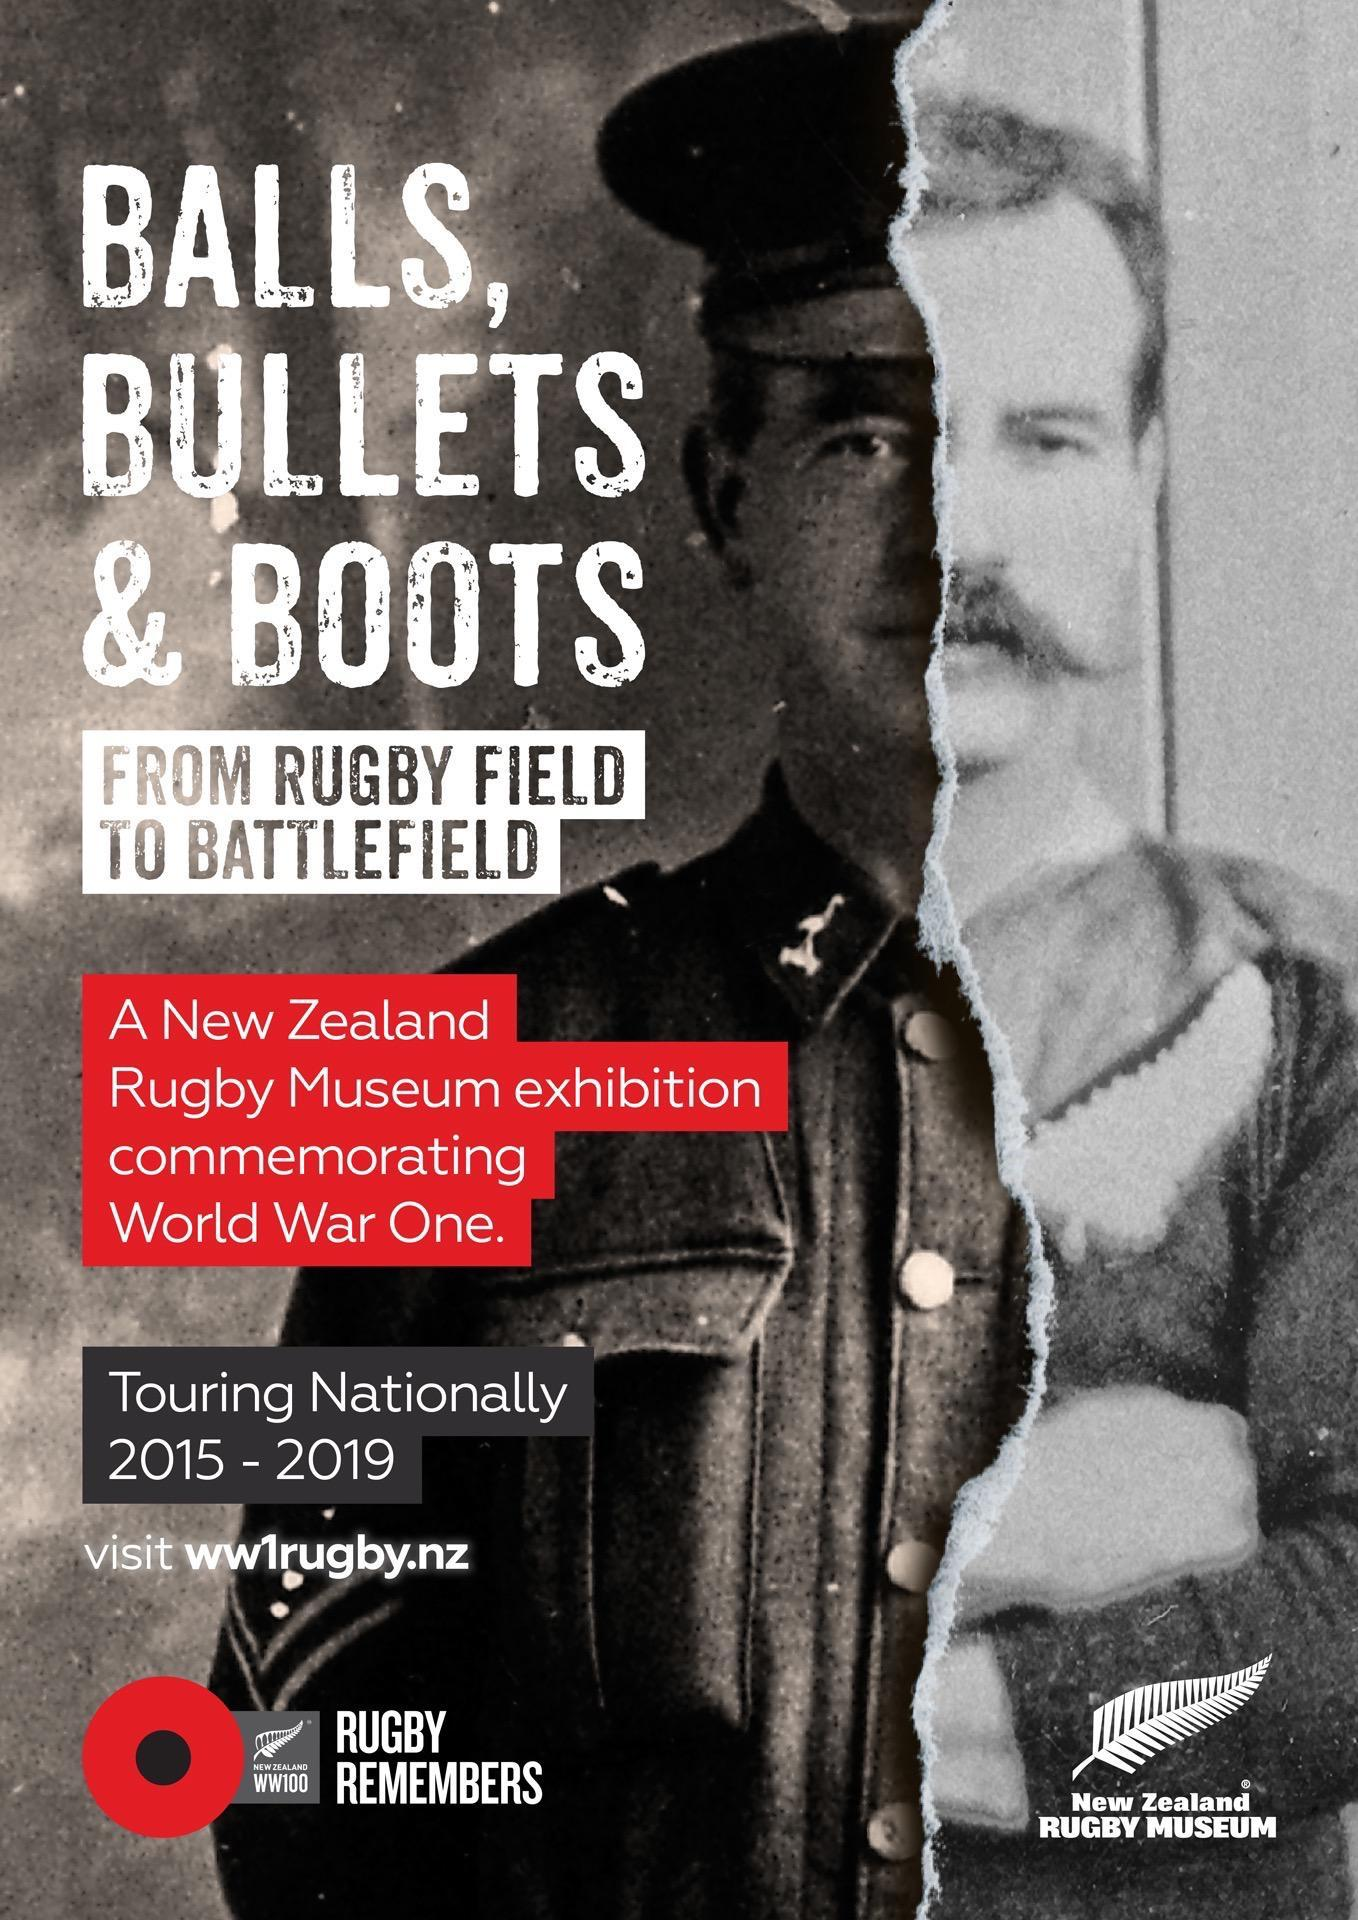 Balls, Bullets & Boots Exhibition image